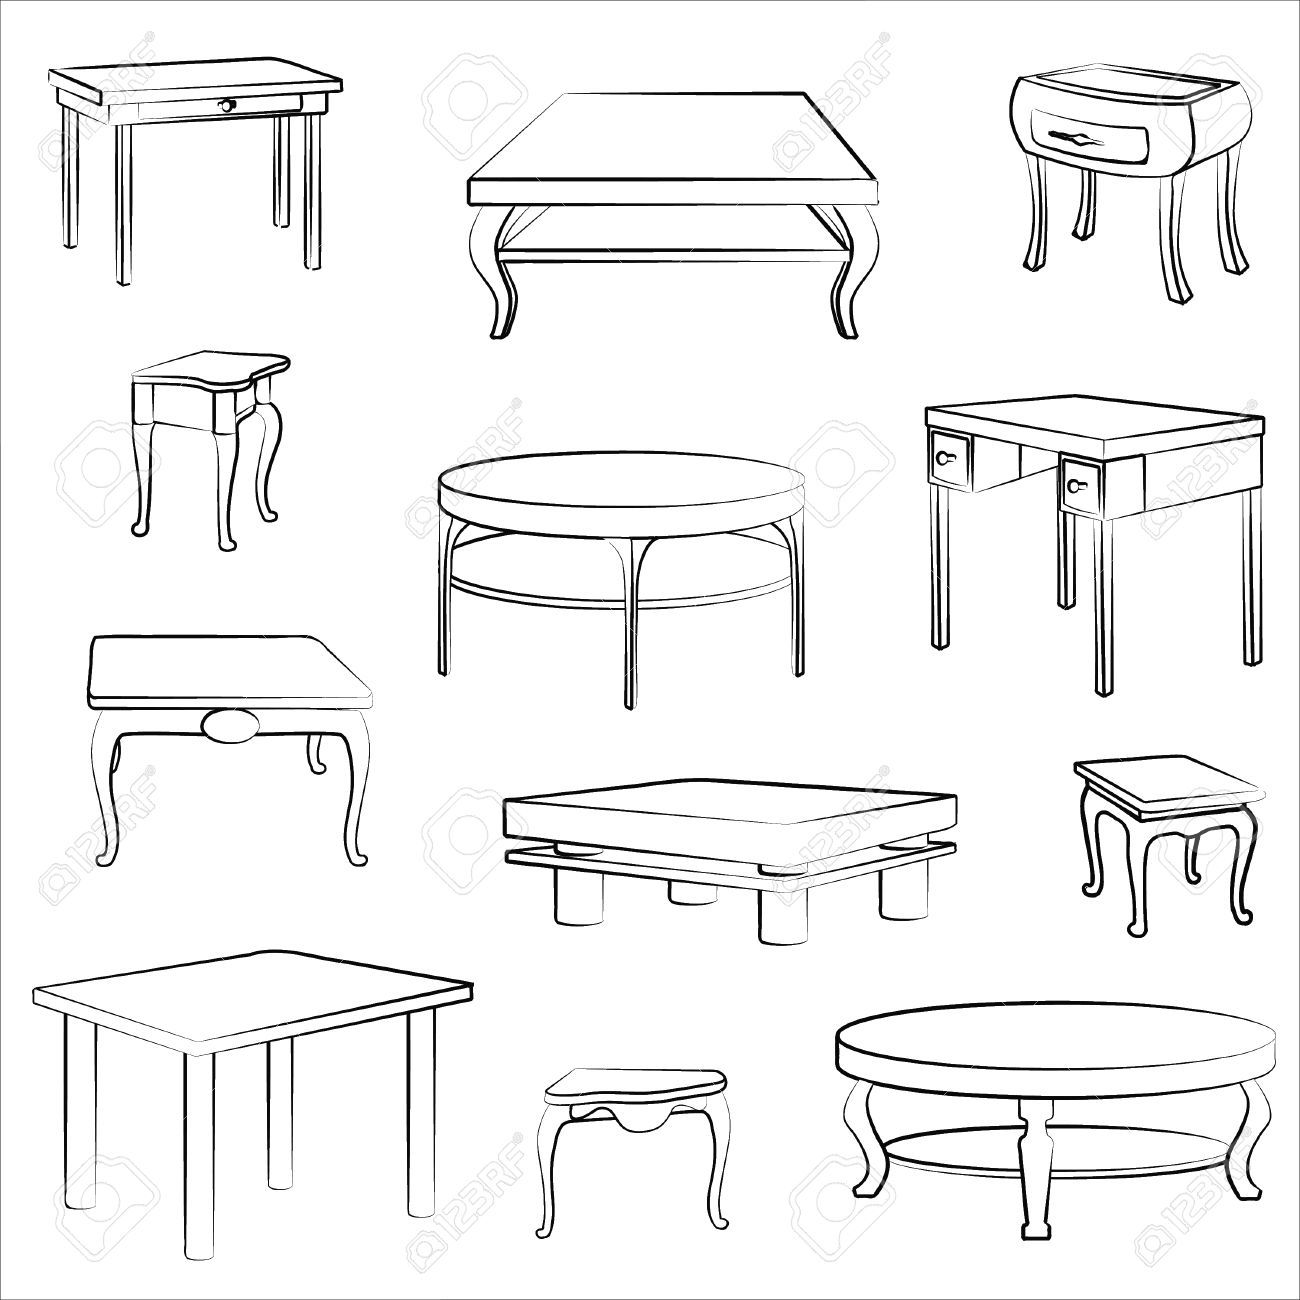 Furniture Set Interior Detail Outline Collectionof Different Interior Design Sketches Drawing Furniture Interior Design Drawings